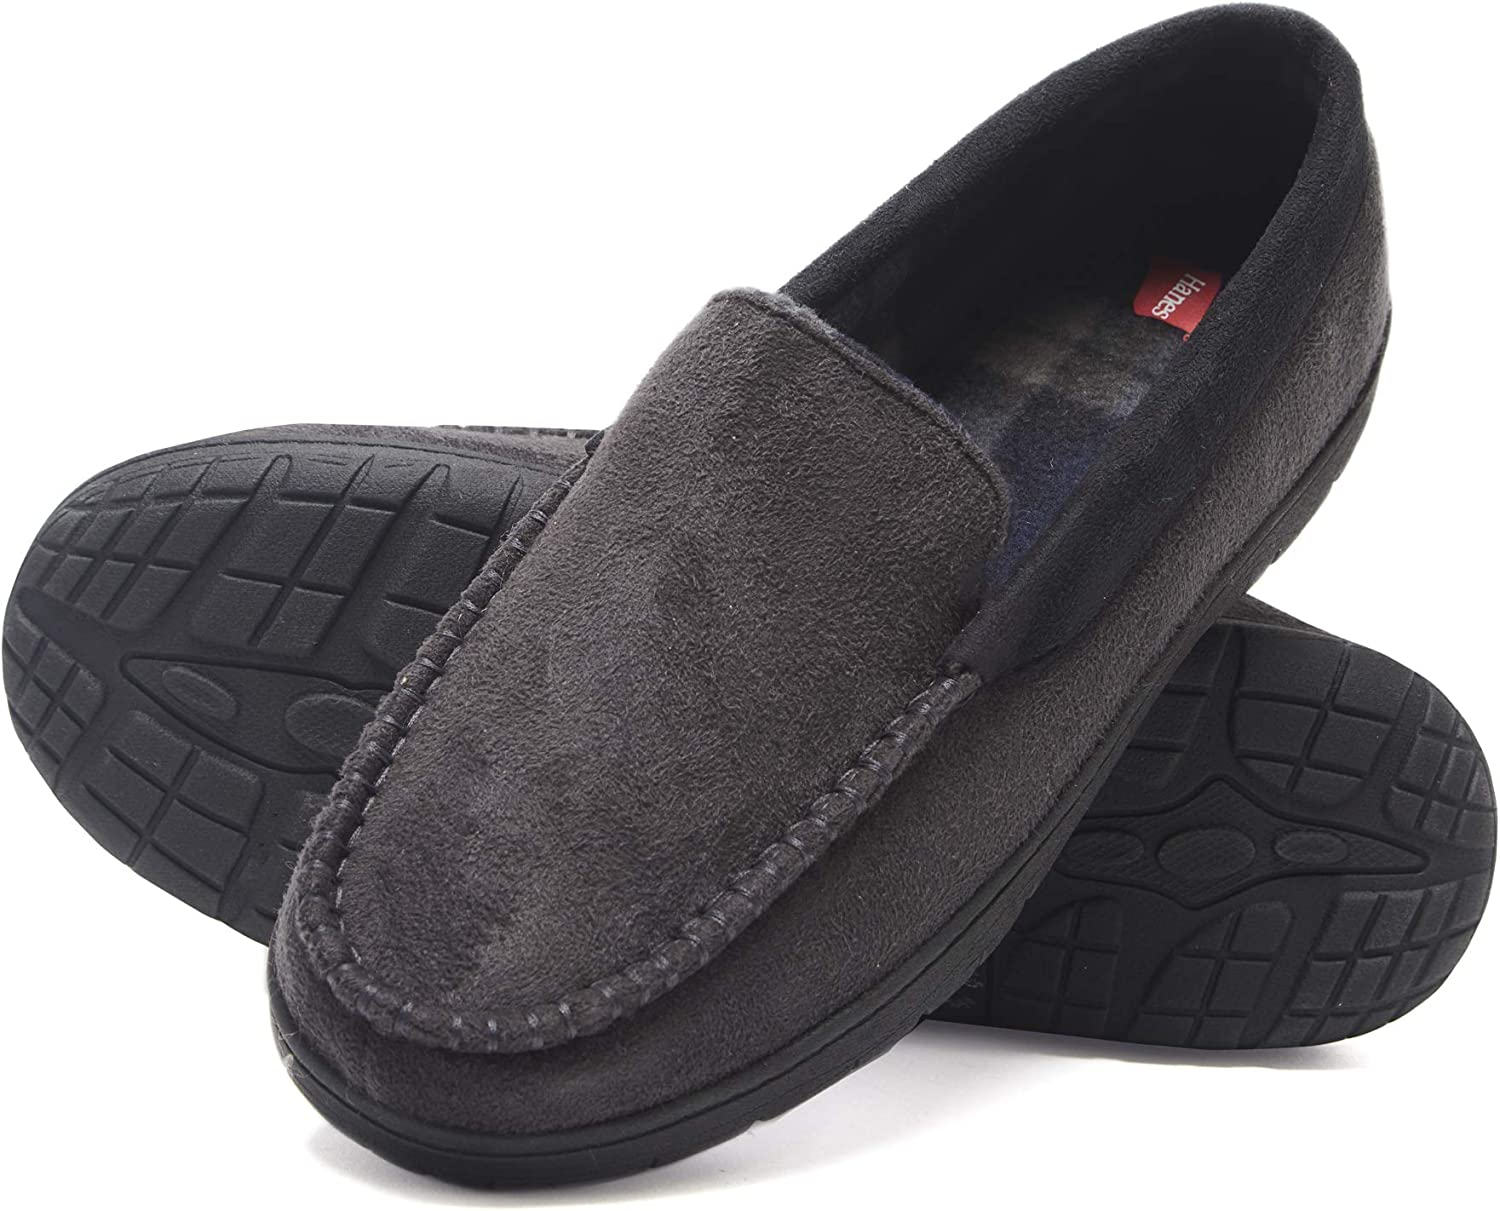 Hanes Men's Casual Slipper